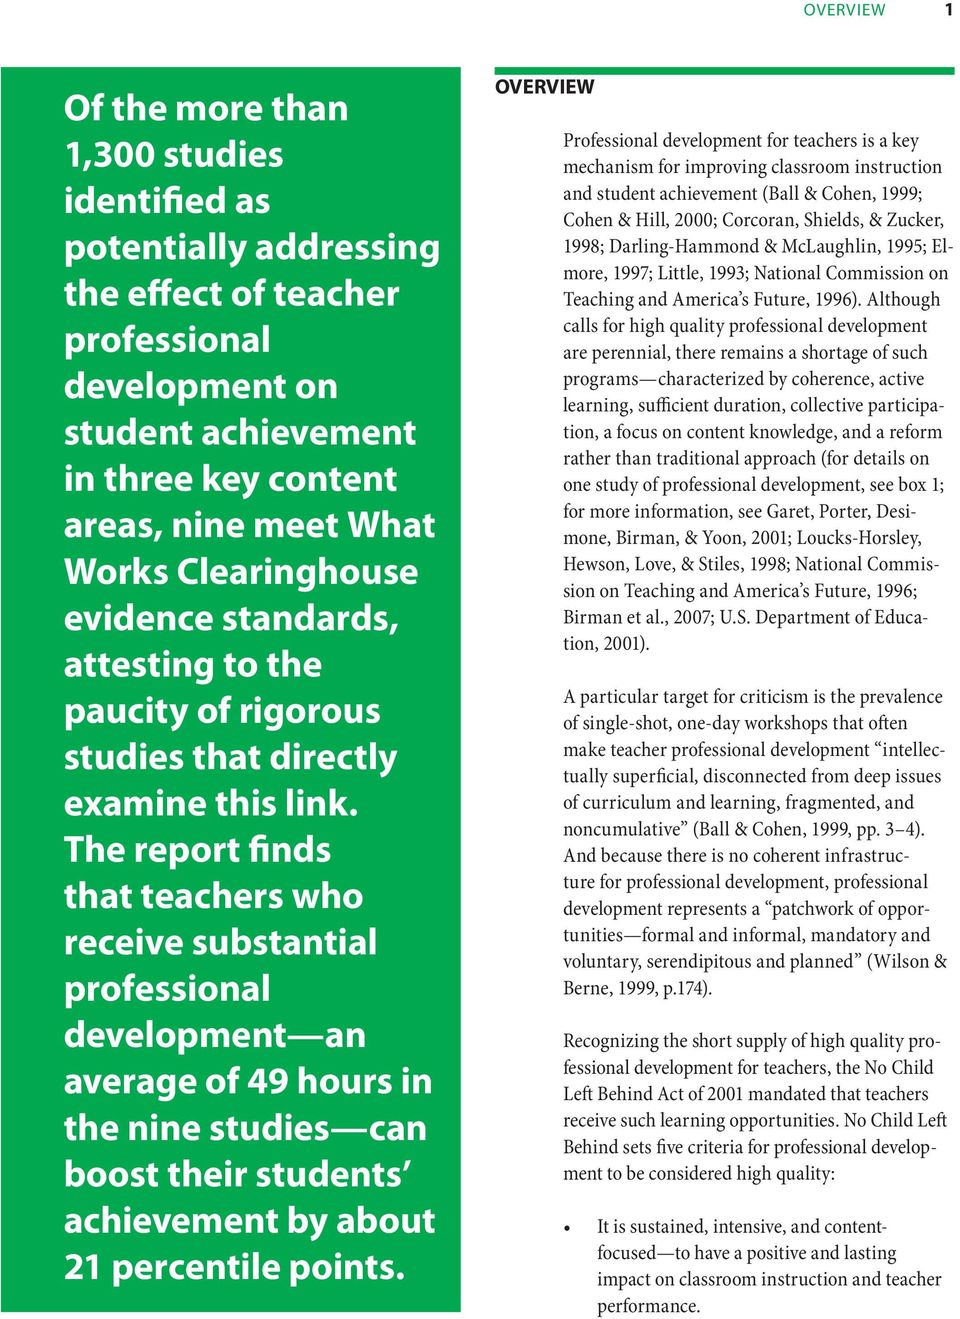 The report finds that teachers who receive substantial professional development an average of 49 hours in the nine studies can boost their students achievement by about 21 percentile points.